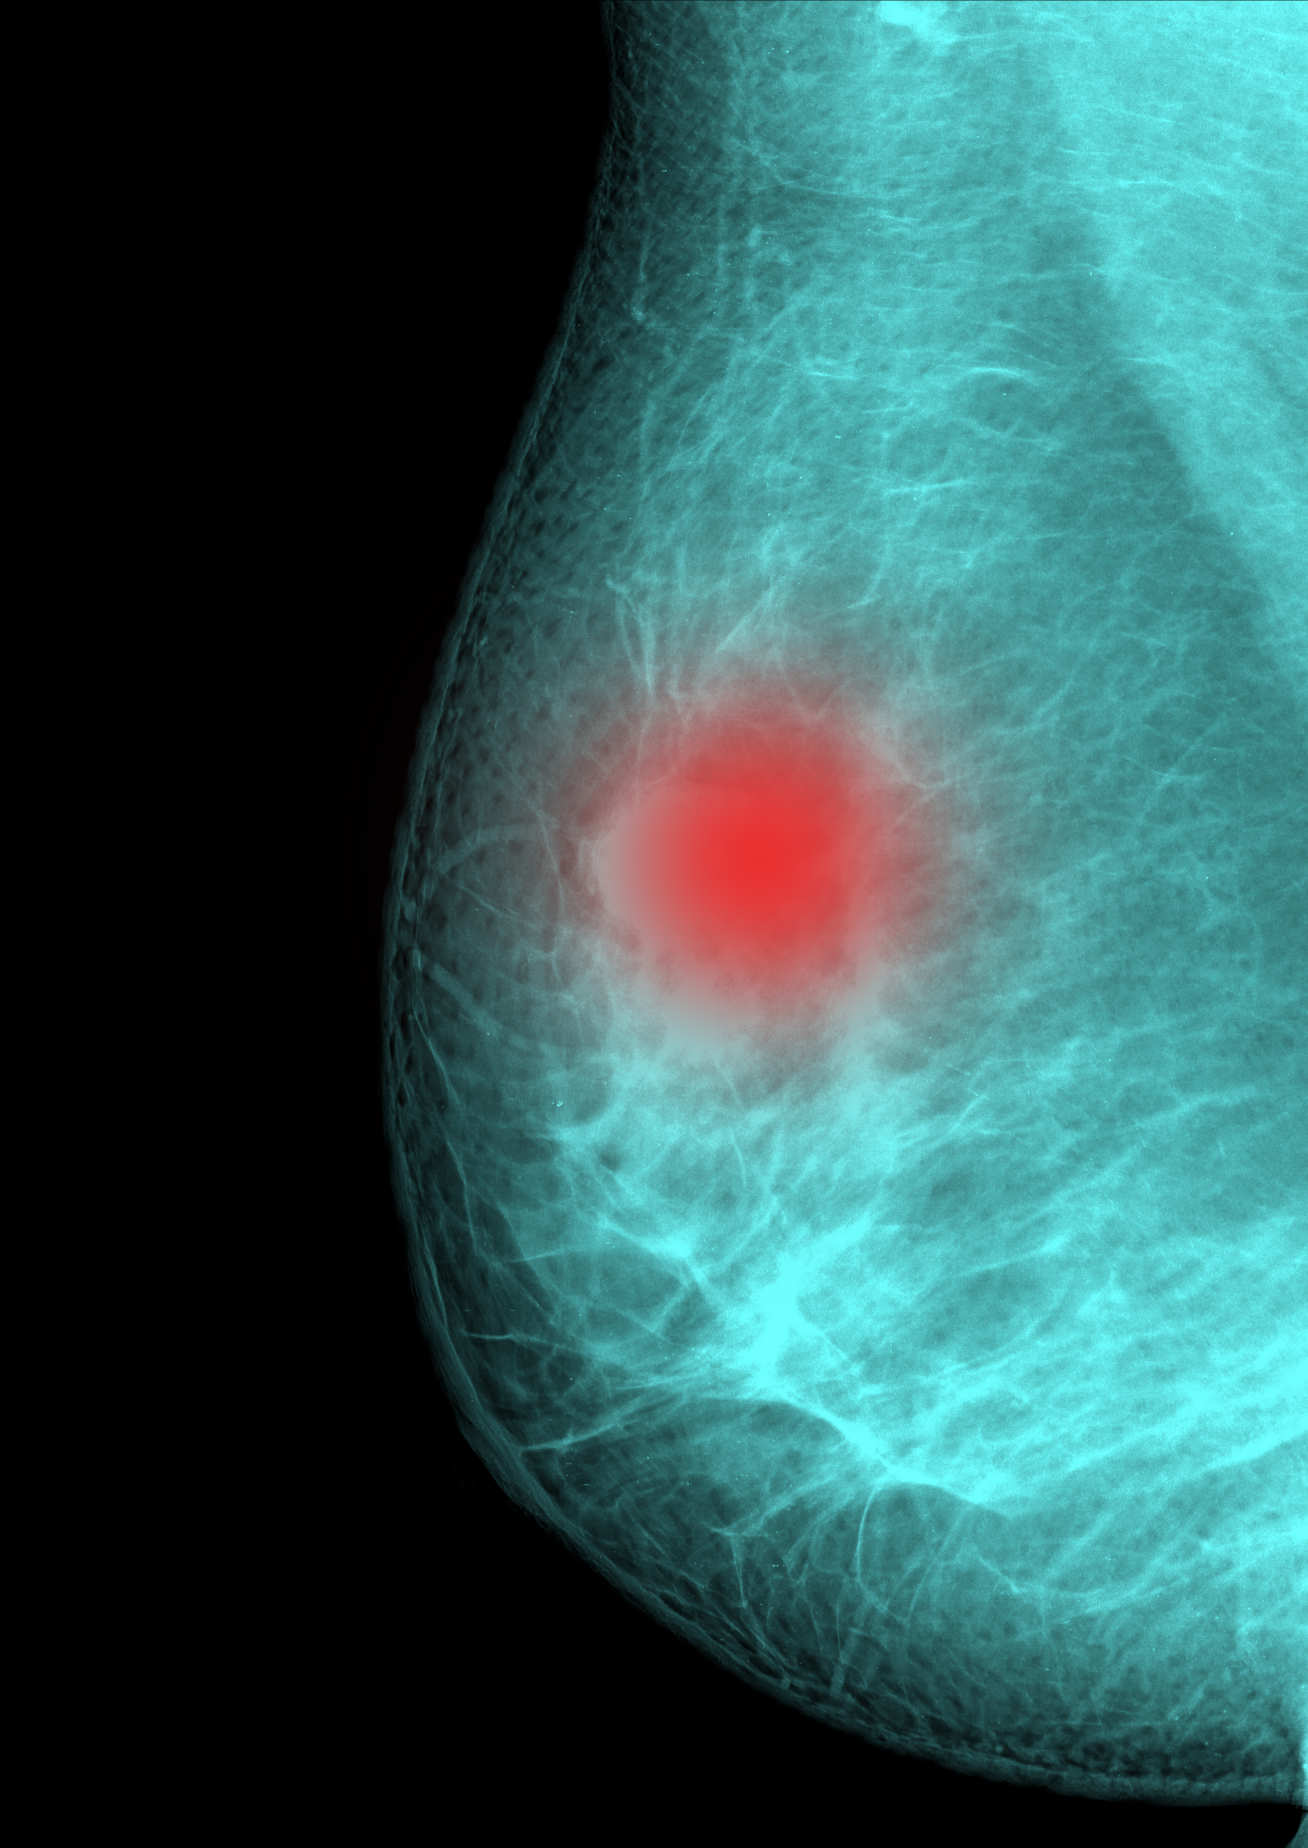 Up to one in five breast cancers are thought to be linked to faulty genes